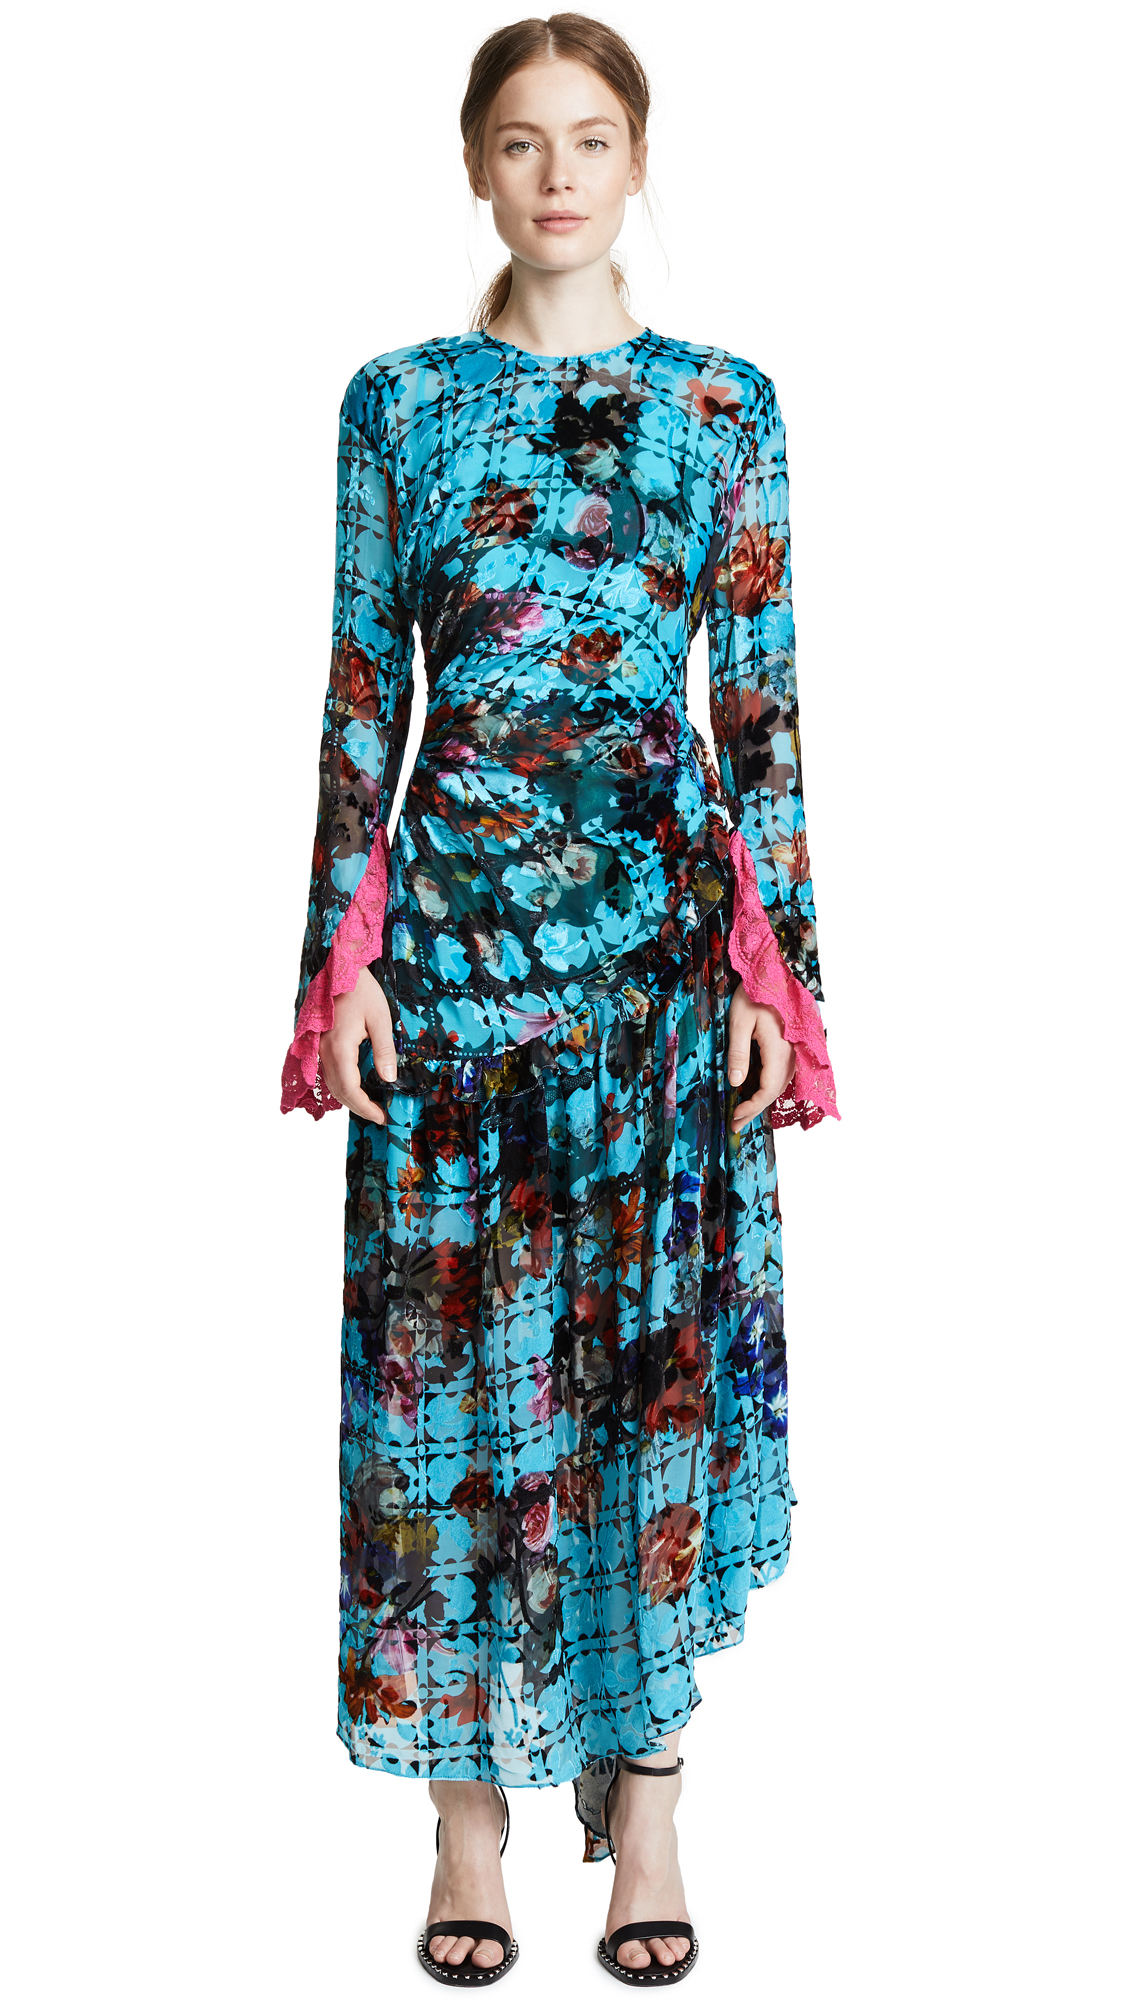 Preen By Thornton Bregazzi Iris Dress In Turquoise Flower